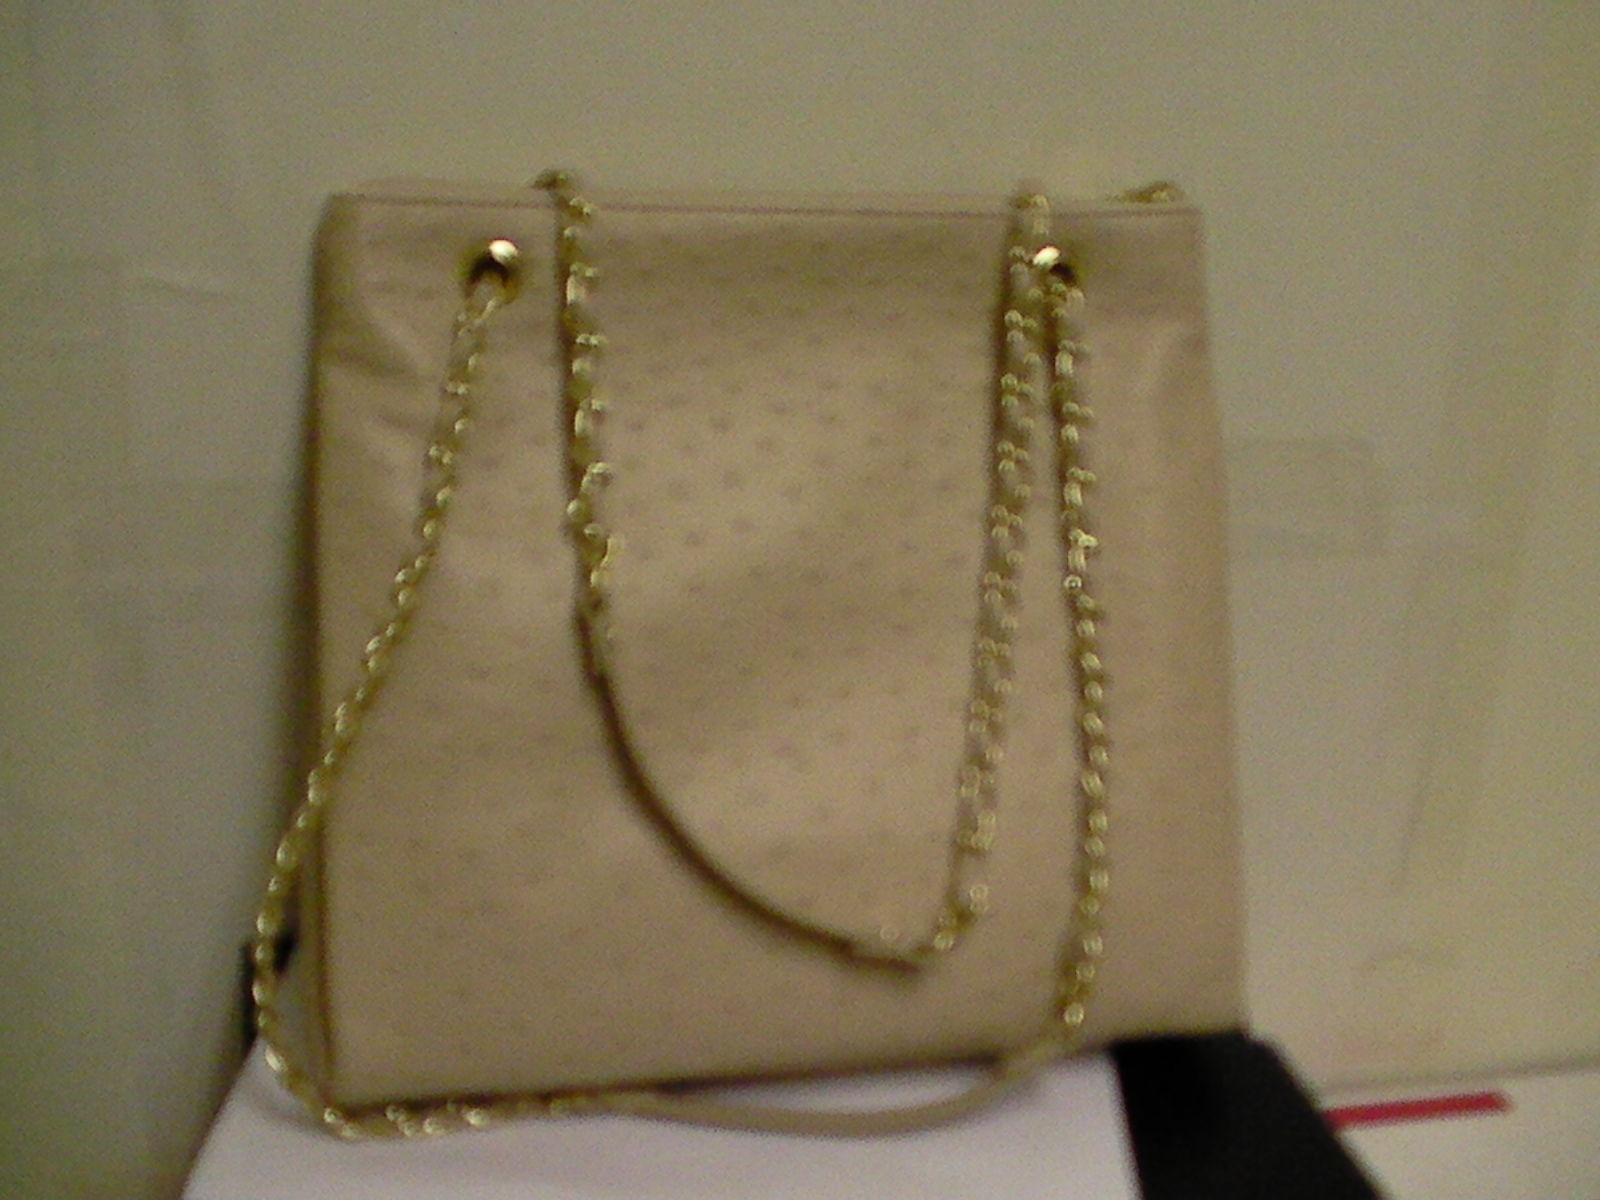 DKNY donna karan shoulder handbag ostrich leather sand purse